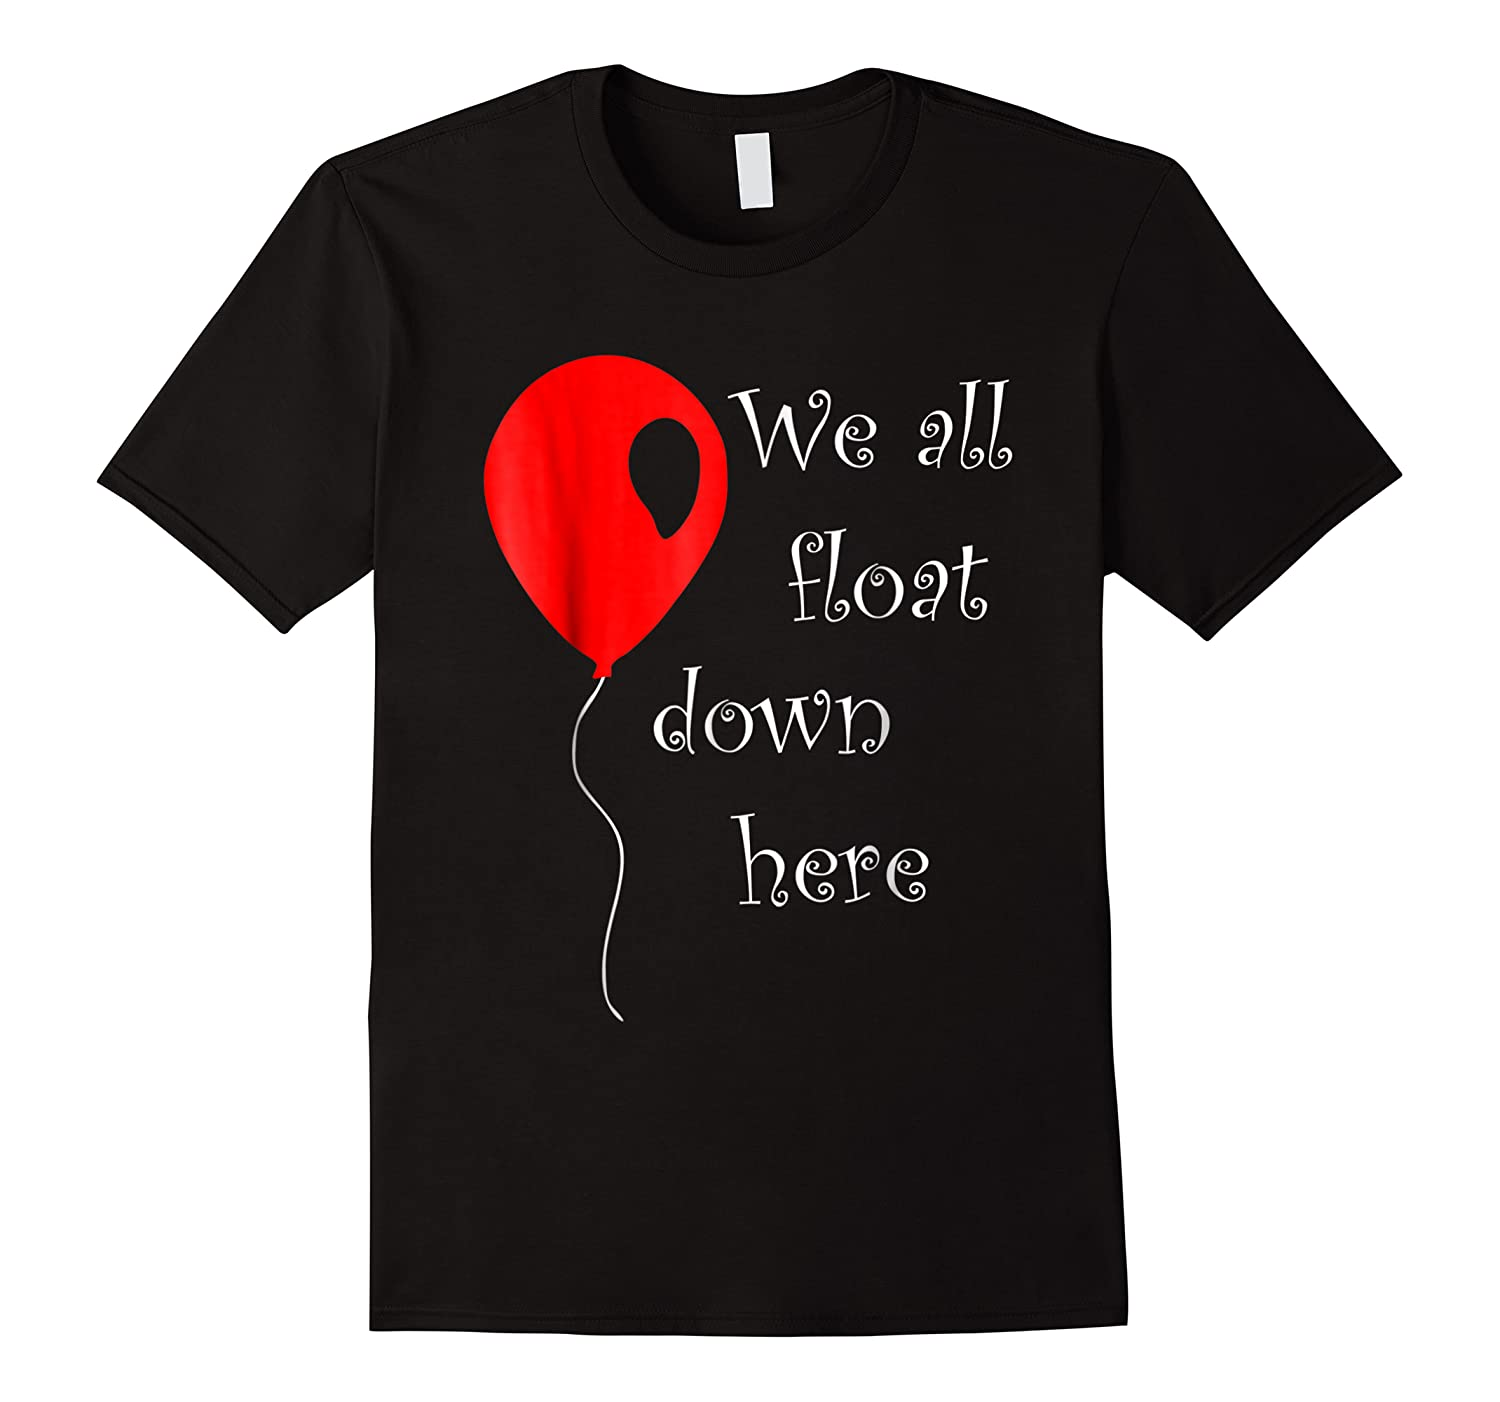 Is Halloween Costume Red Balloon You'll Float Too Shirts